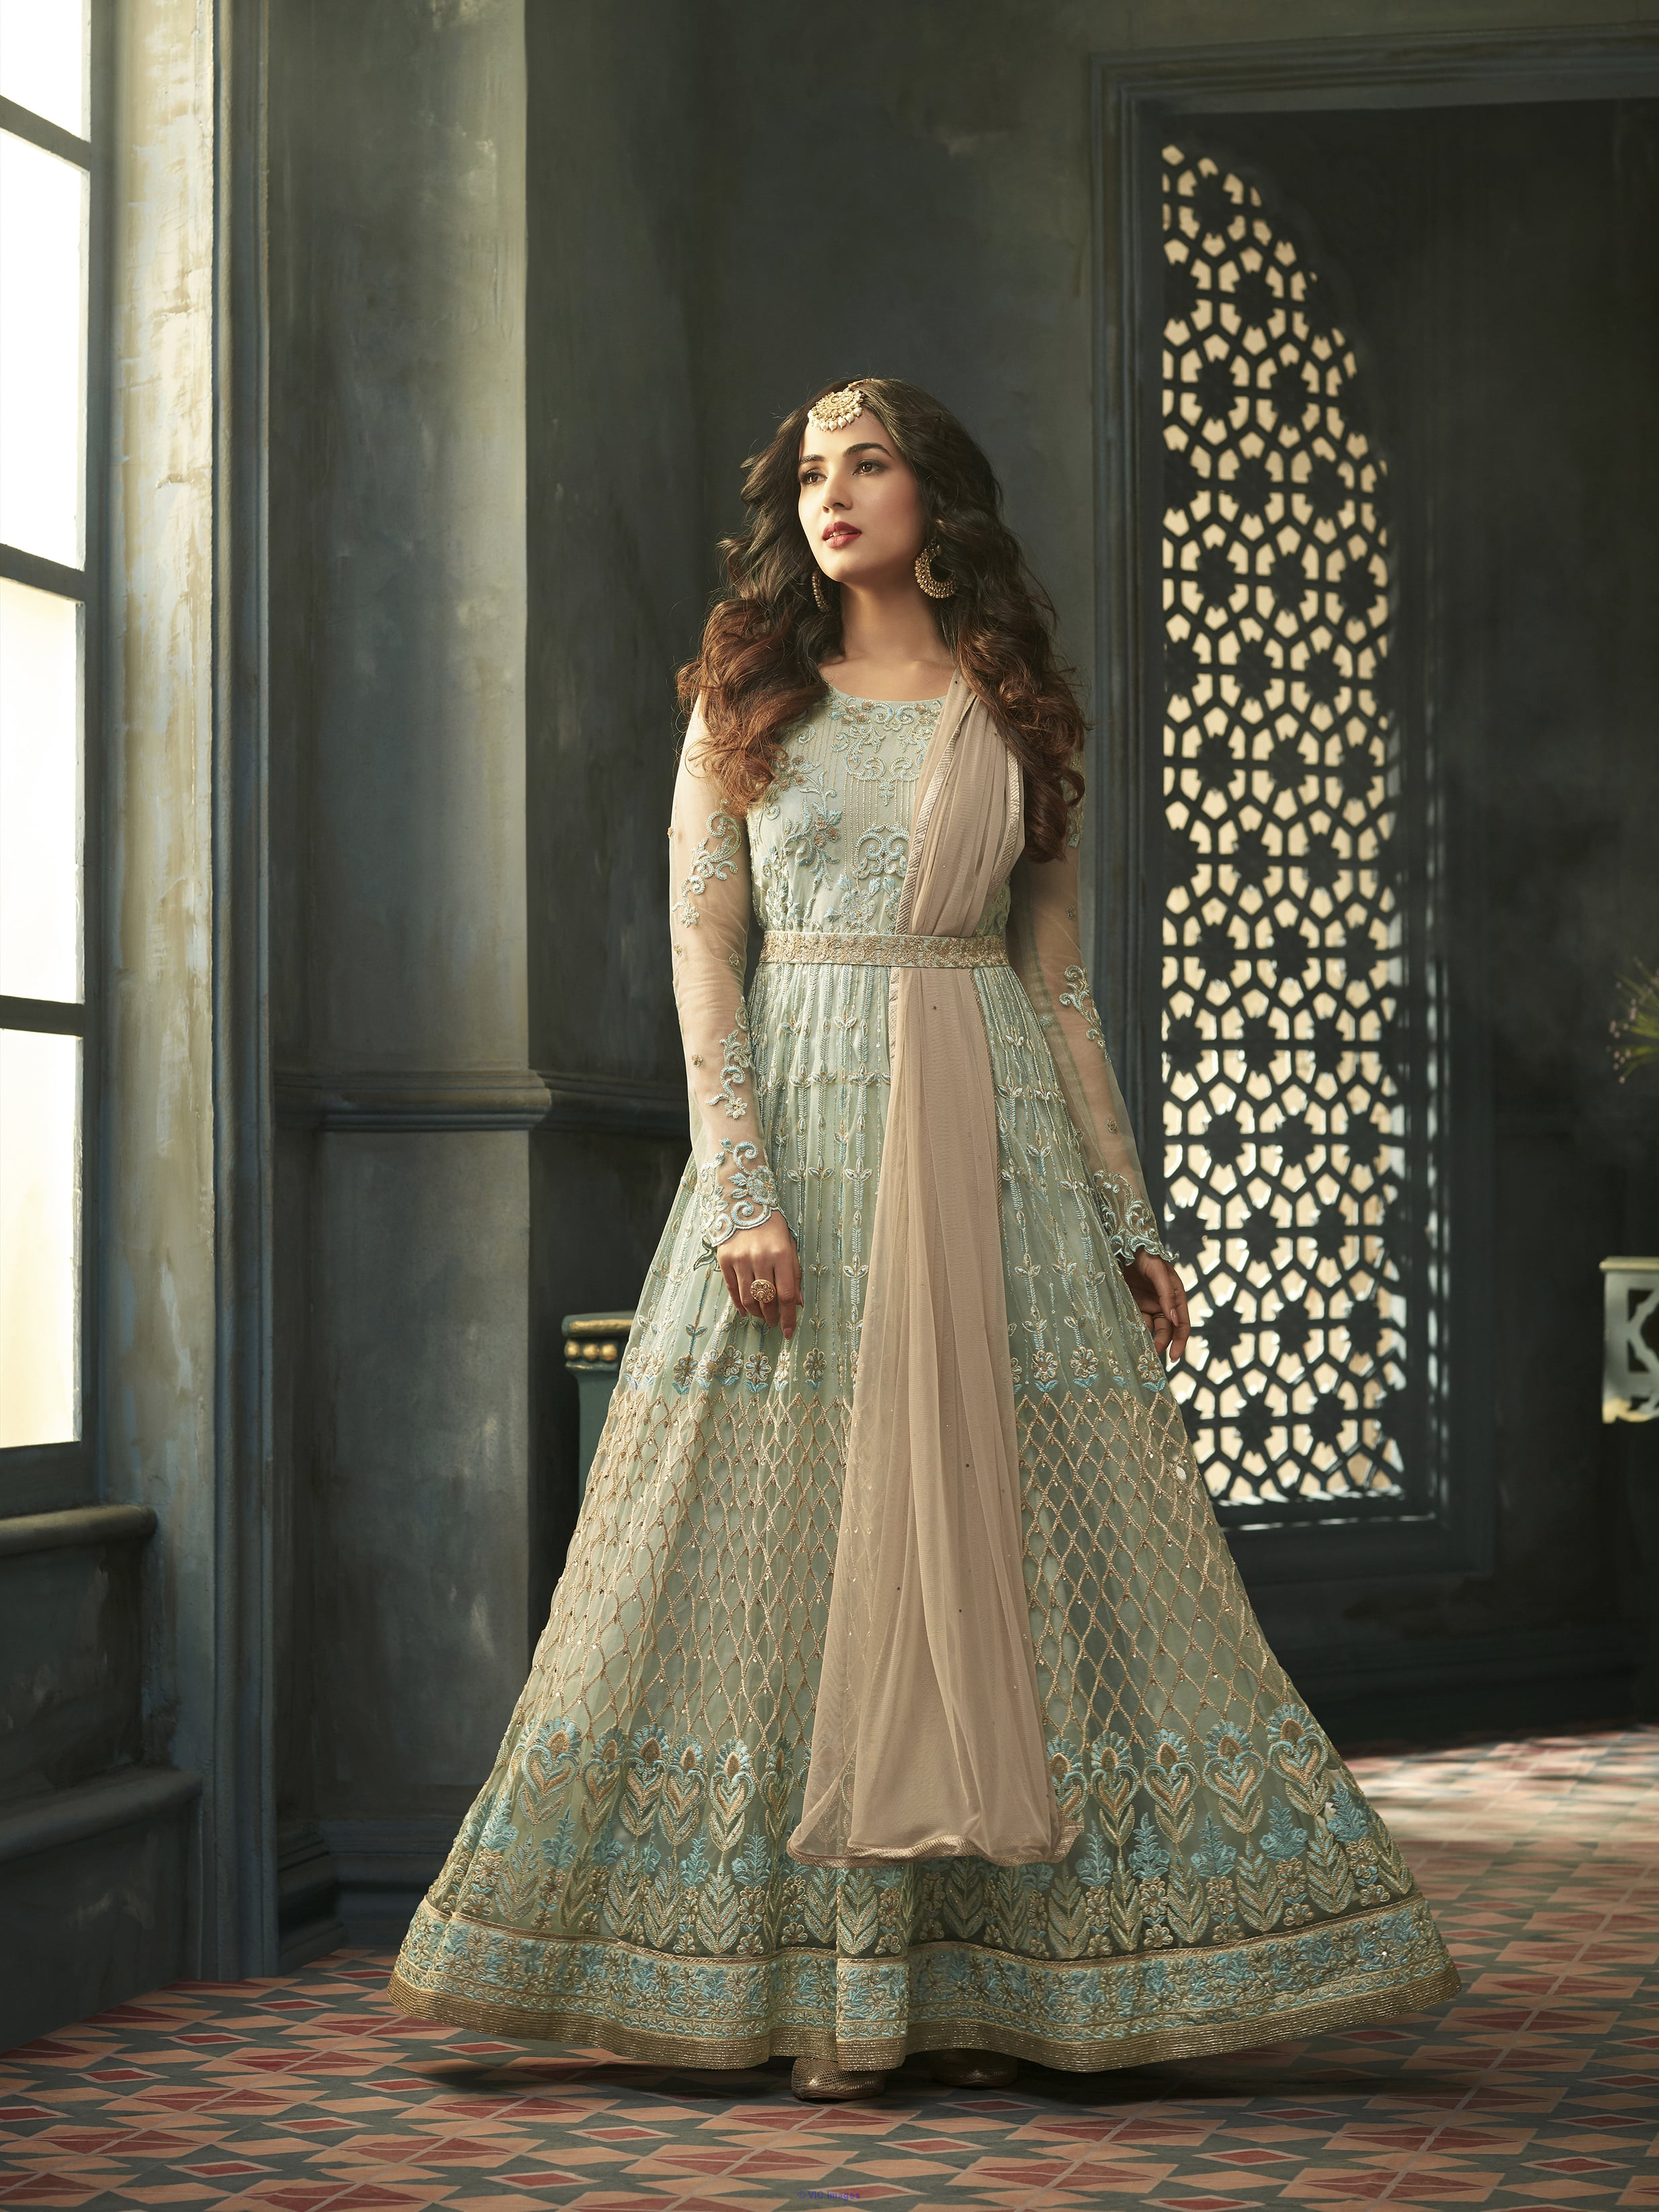 Free Shipping Offers on Indian Clothing Online